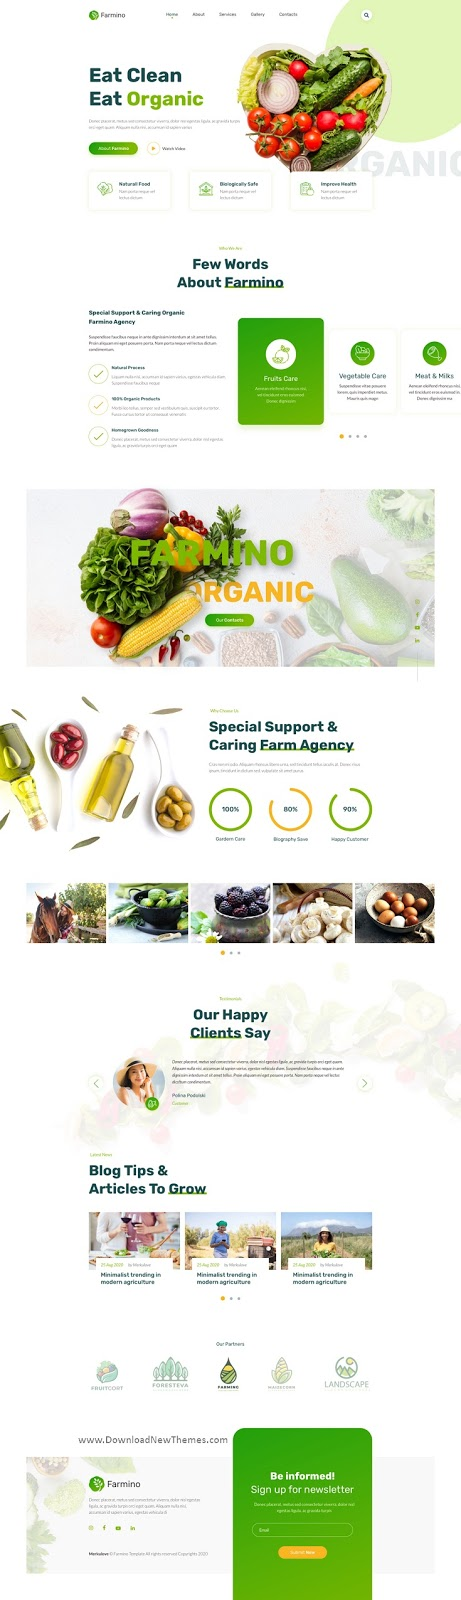 Organic Food Adobe XD Template